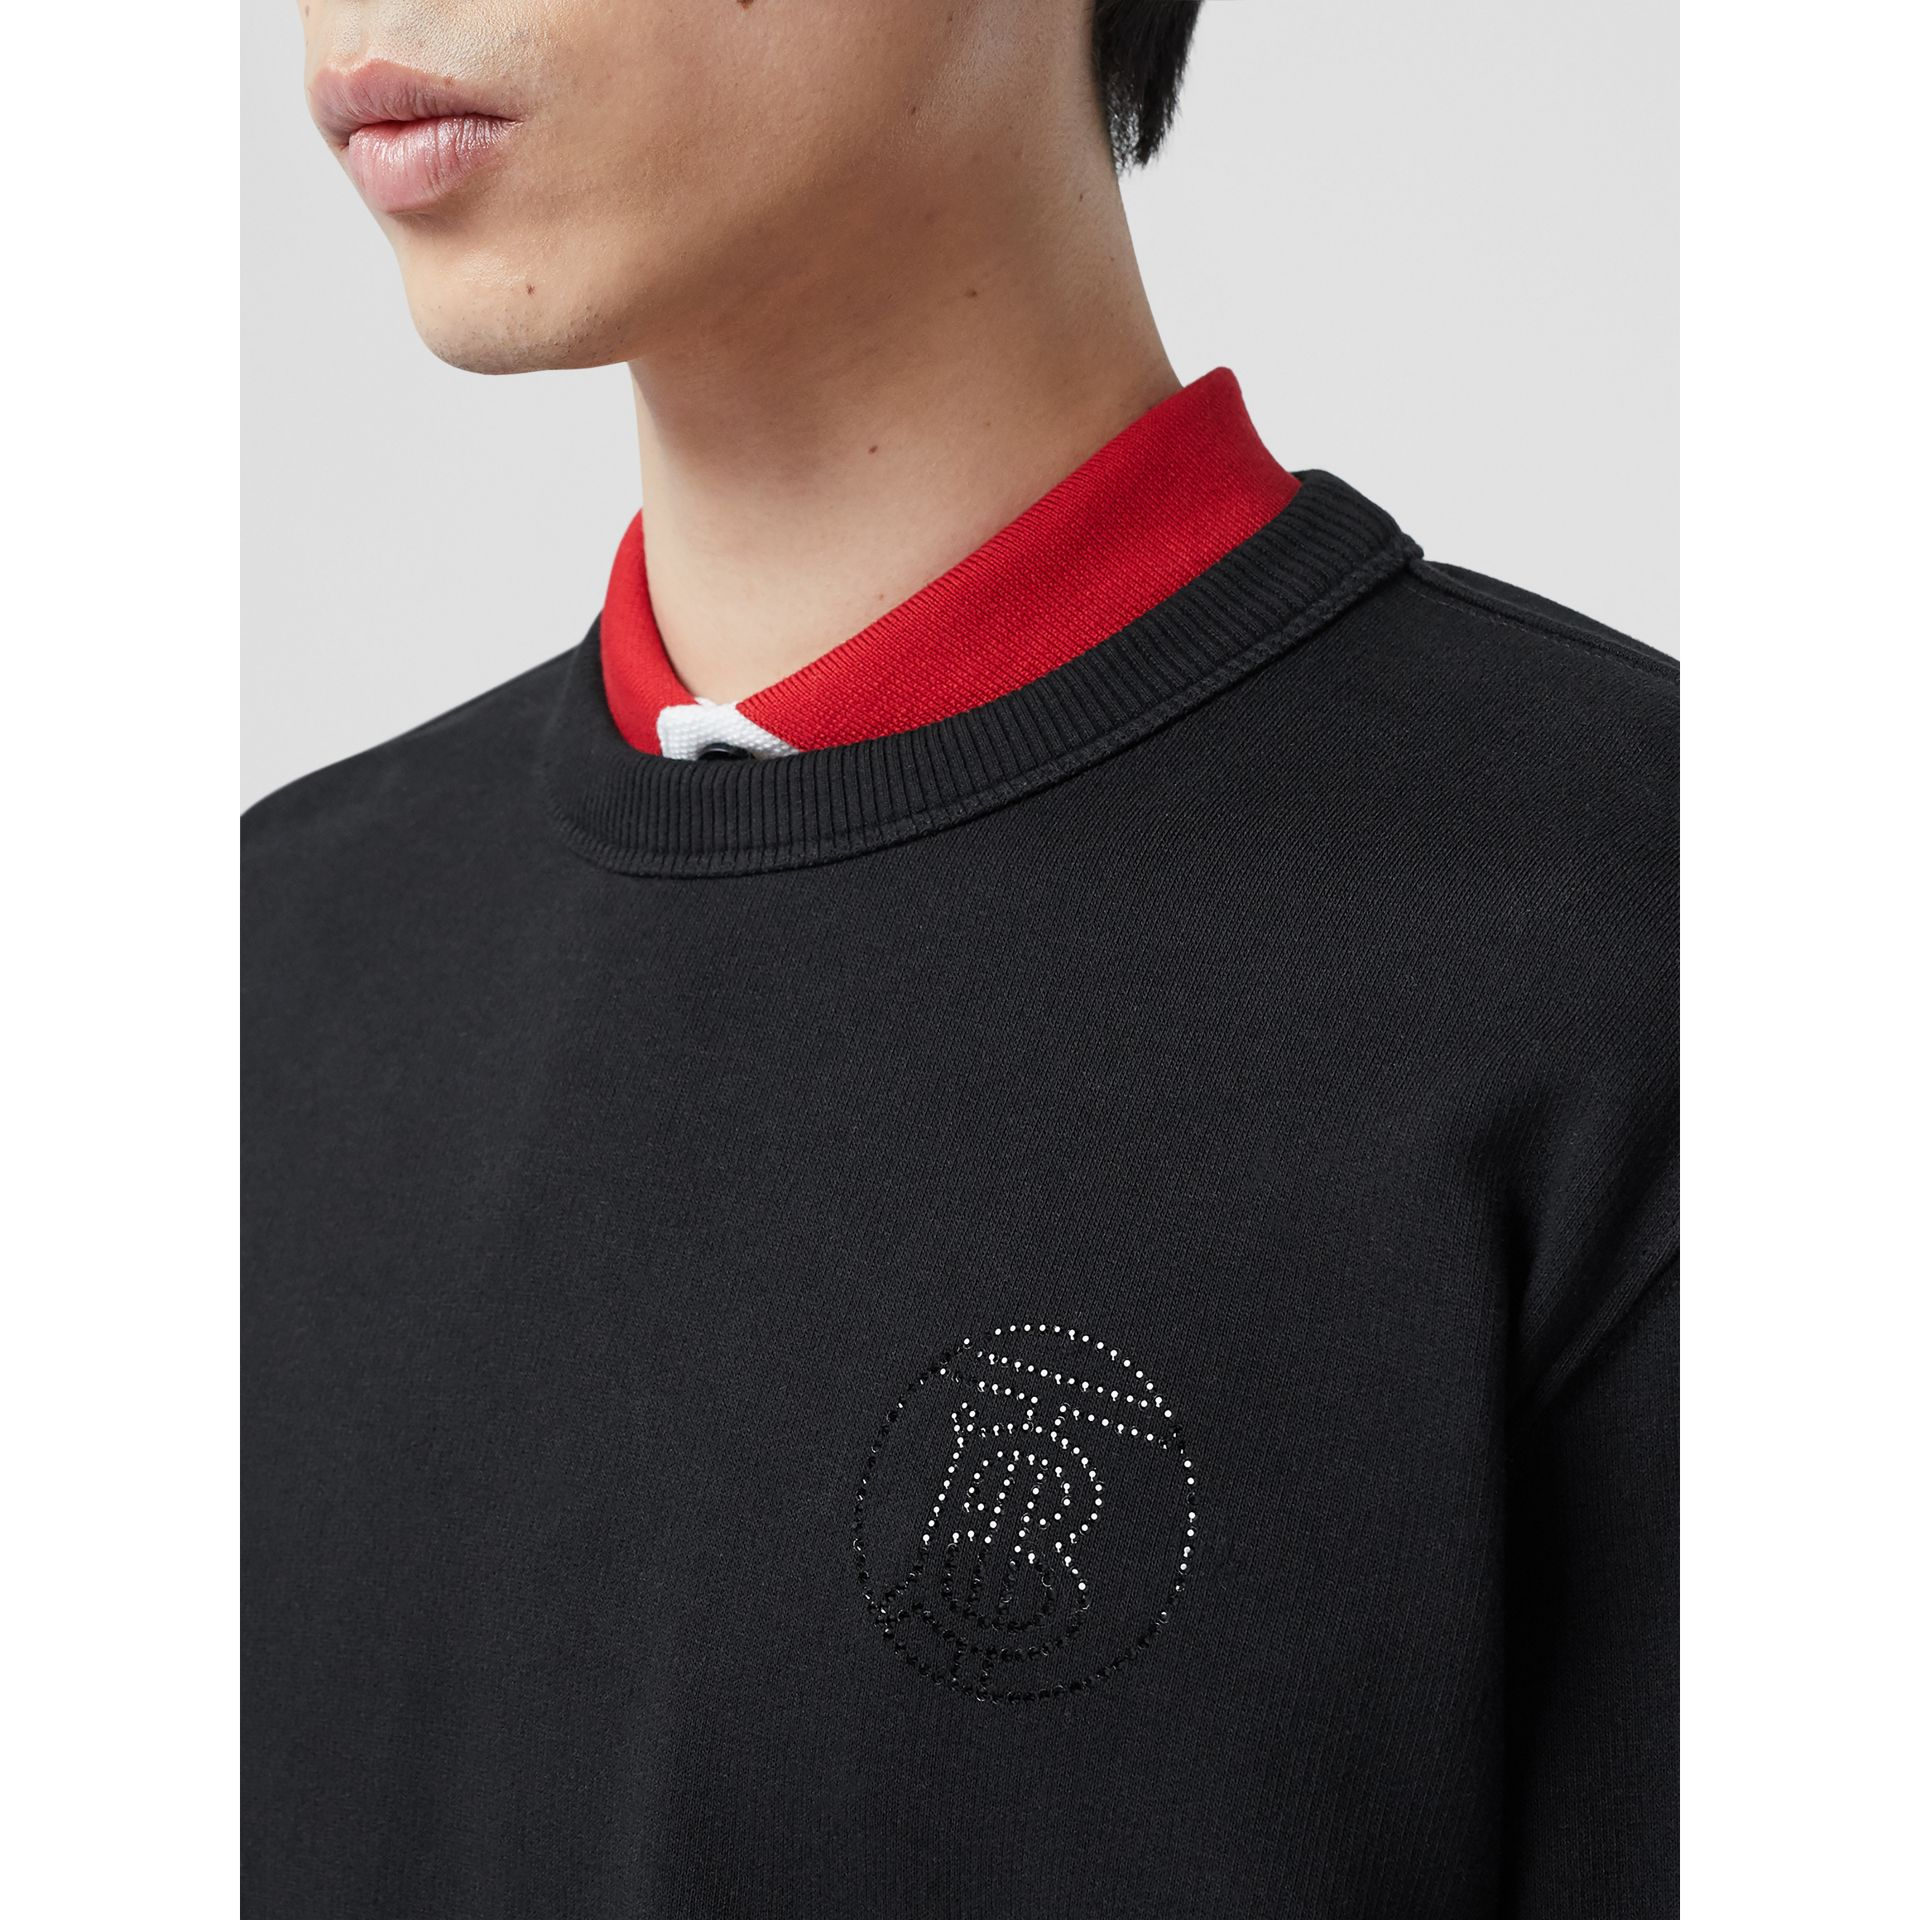 Crystal Monogram Motif Cotton Sweatshirt in Black - Men | Burberry Hong Kong S.A.R - gallery image 1